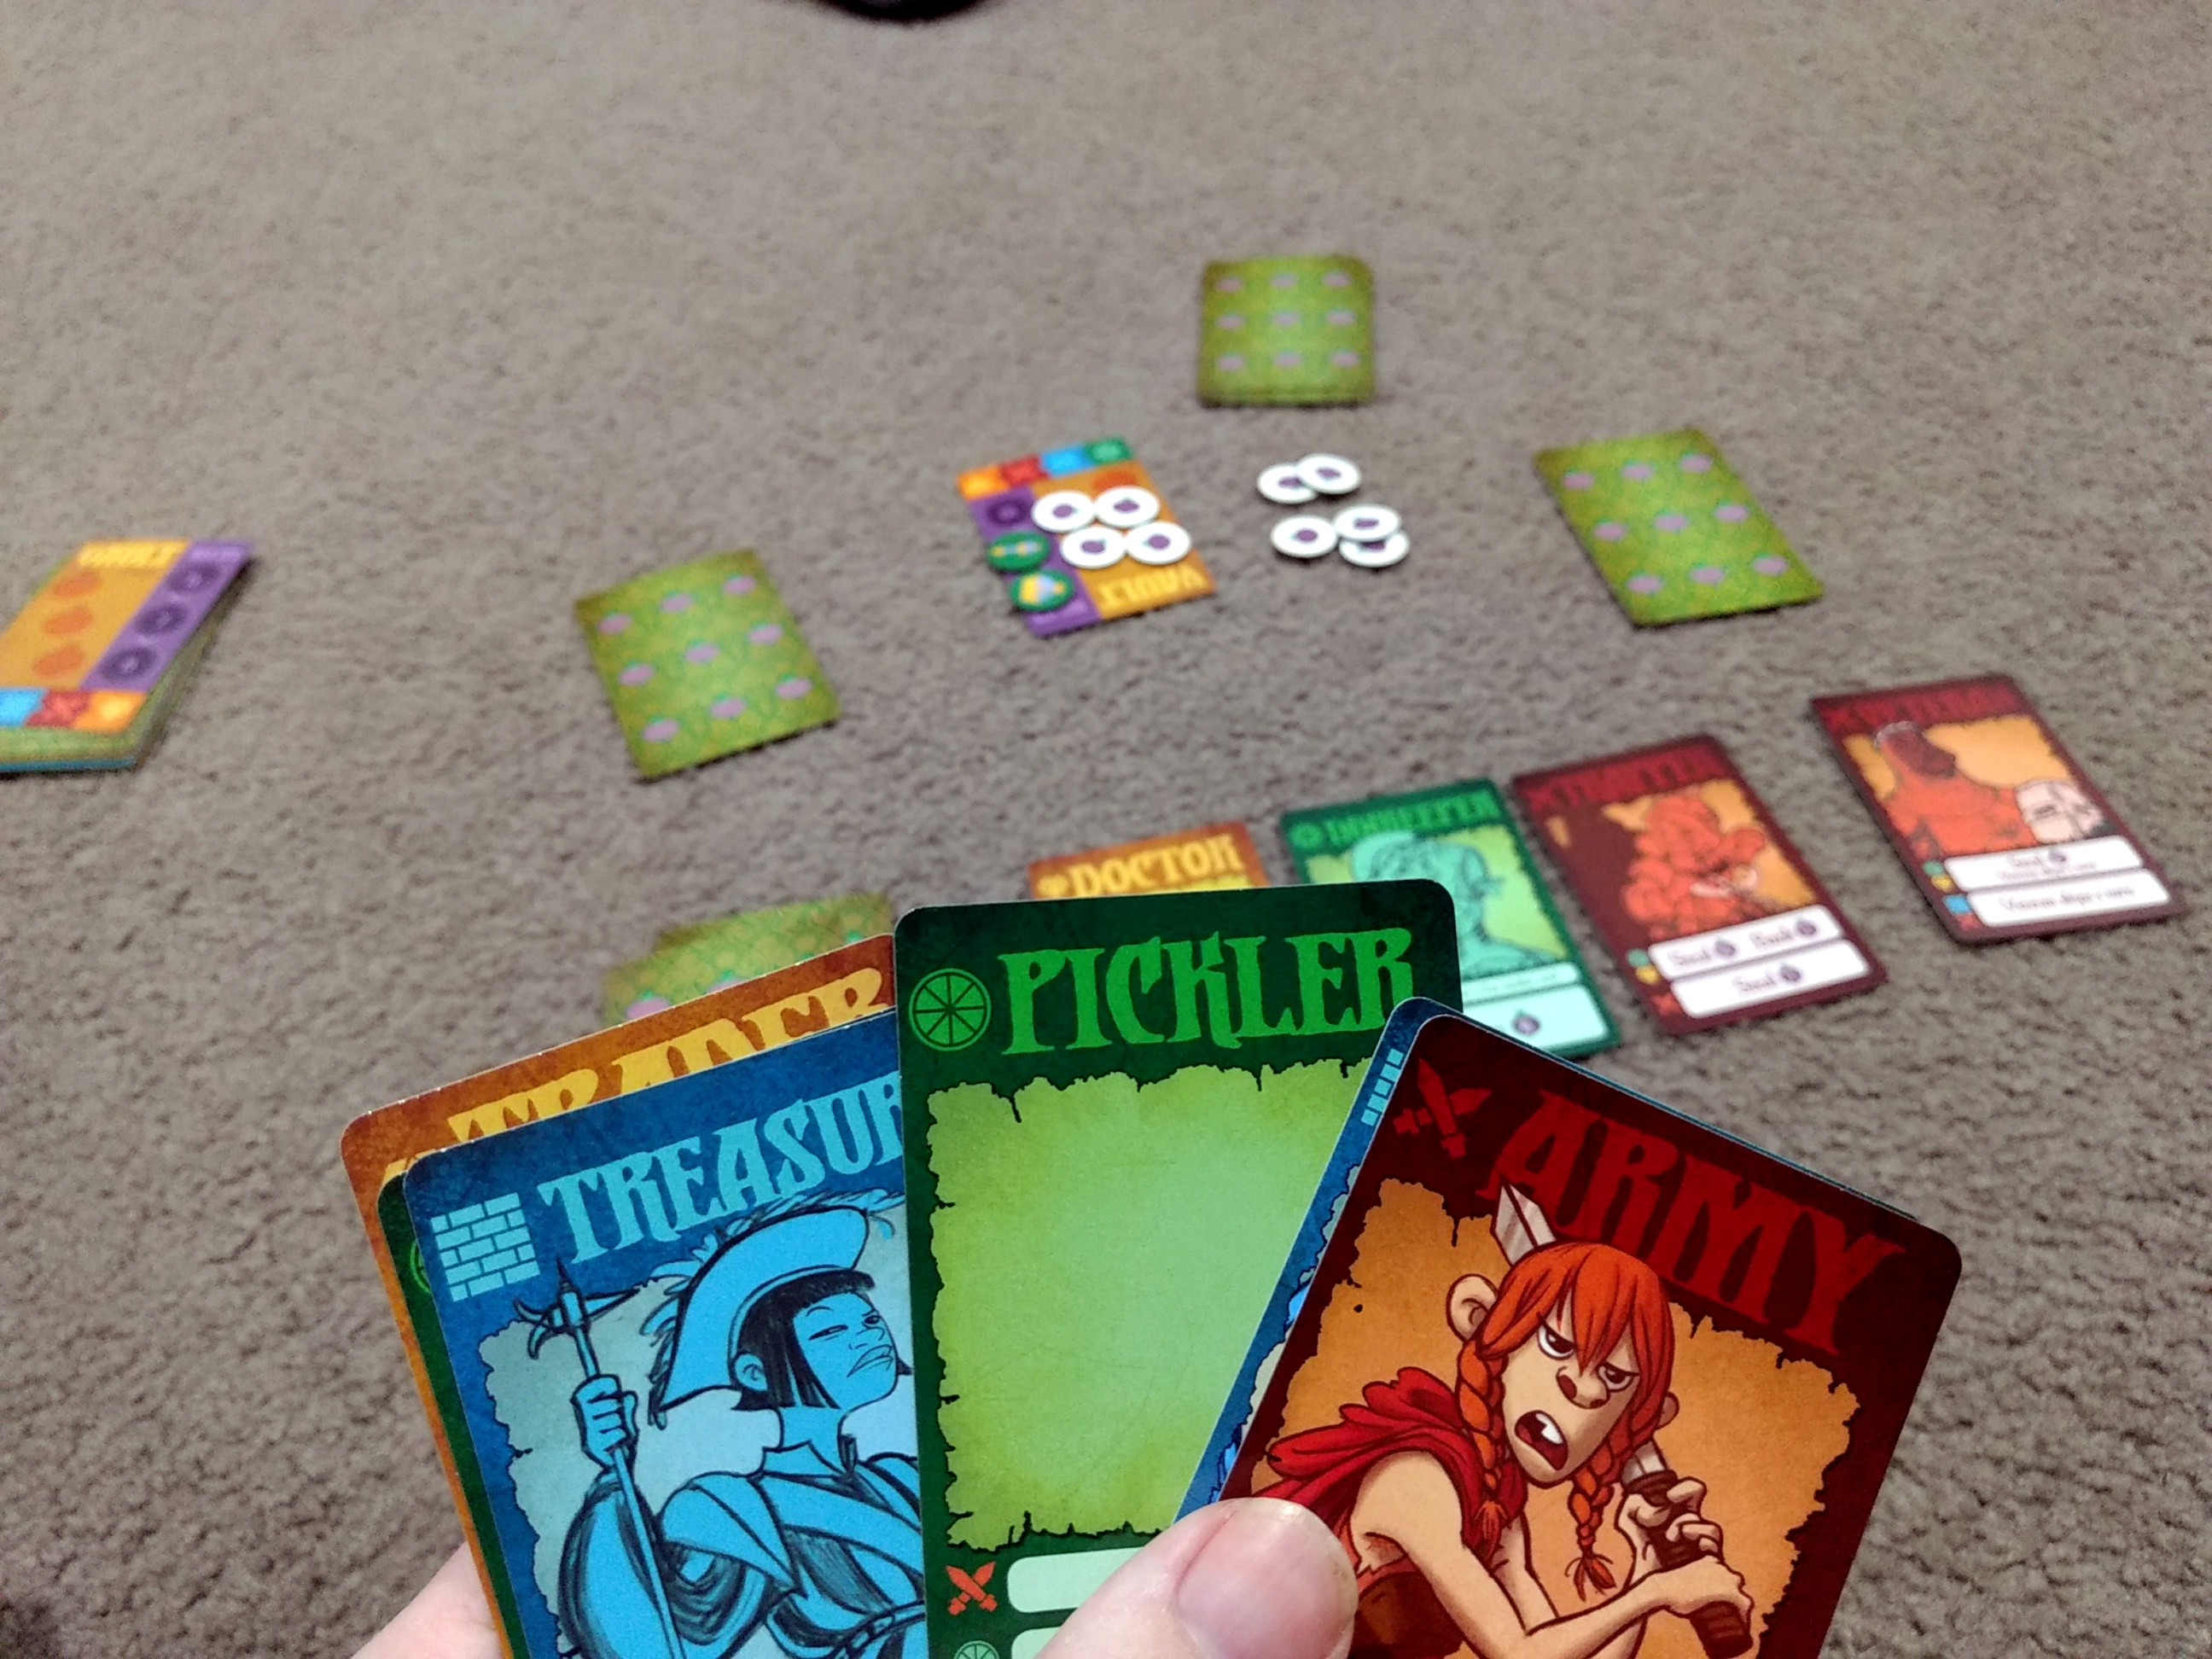 Village Pillage in play, a hand of cards that I'm holding, and in the background the market is displayed.